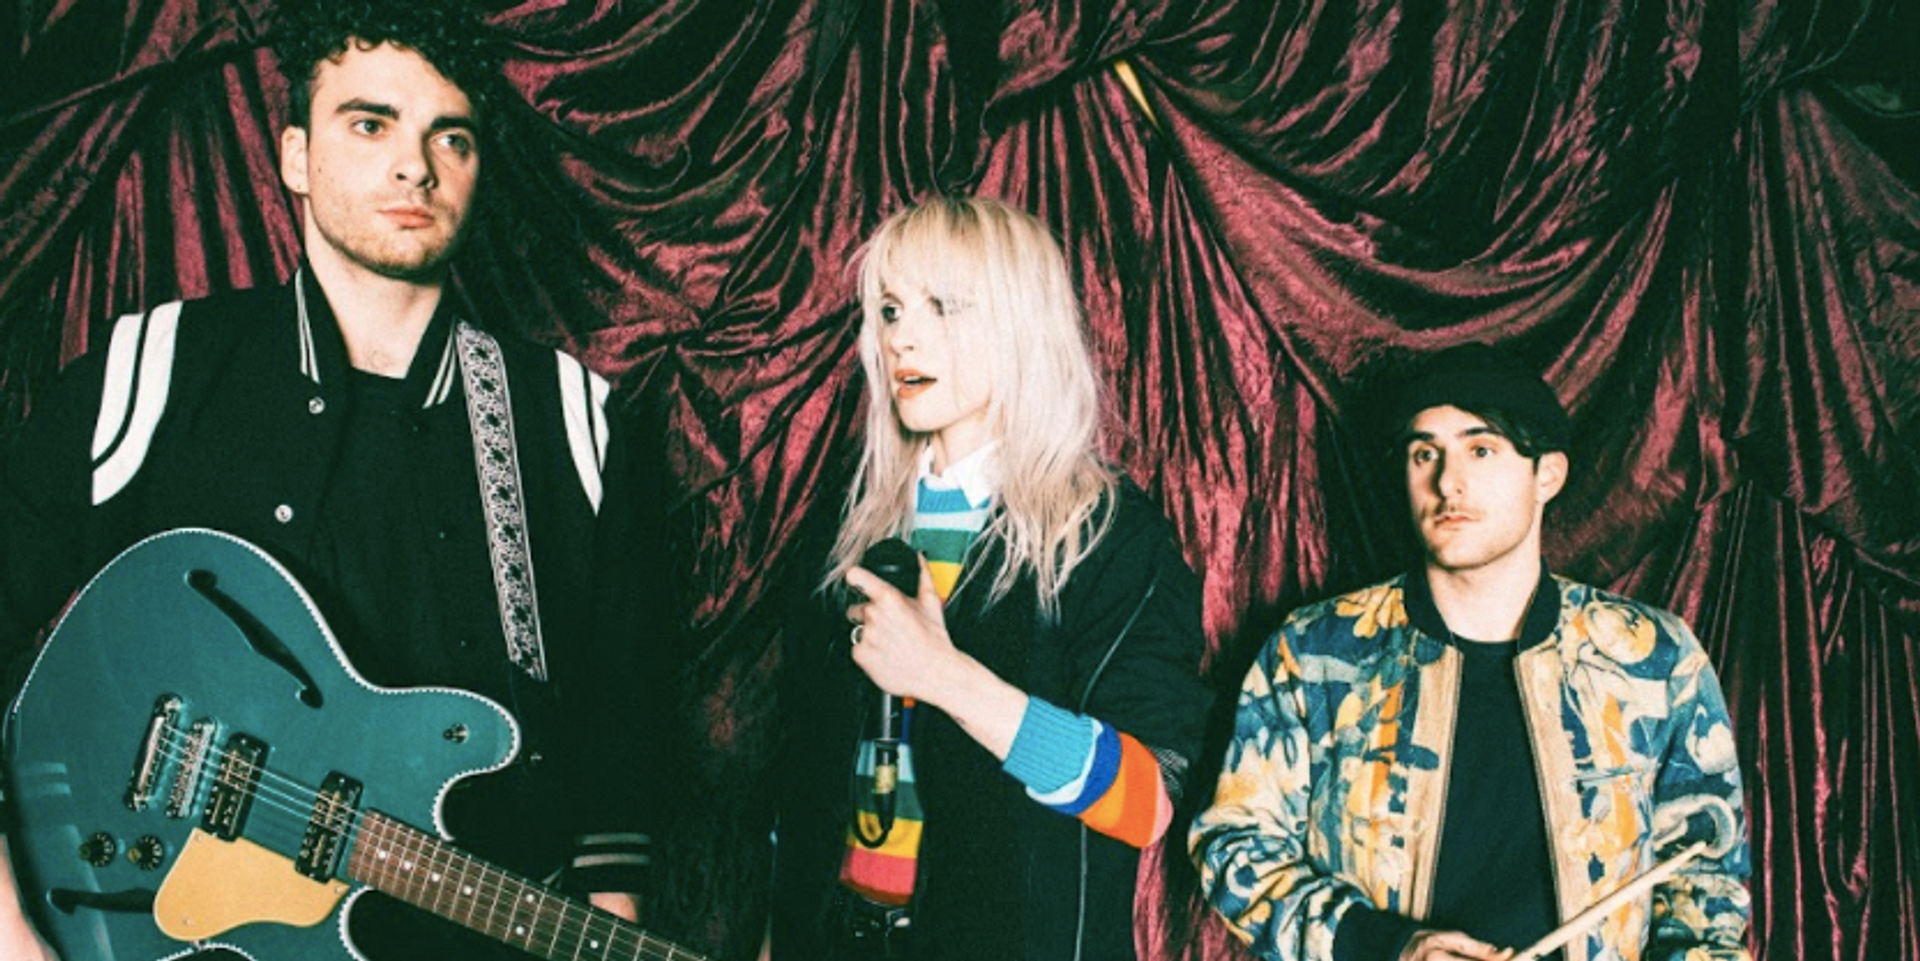 Paramore to perform in Indonesia in February